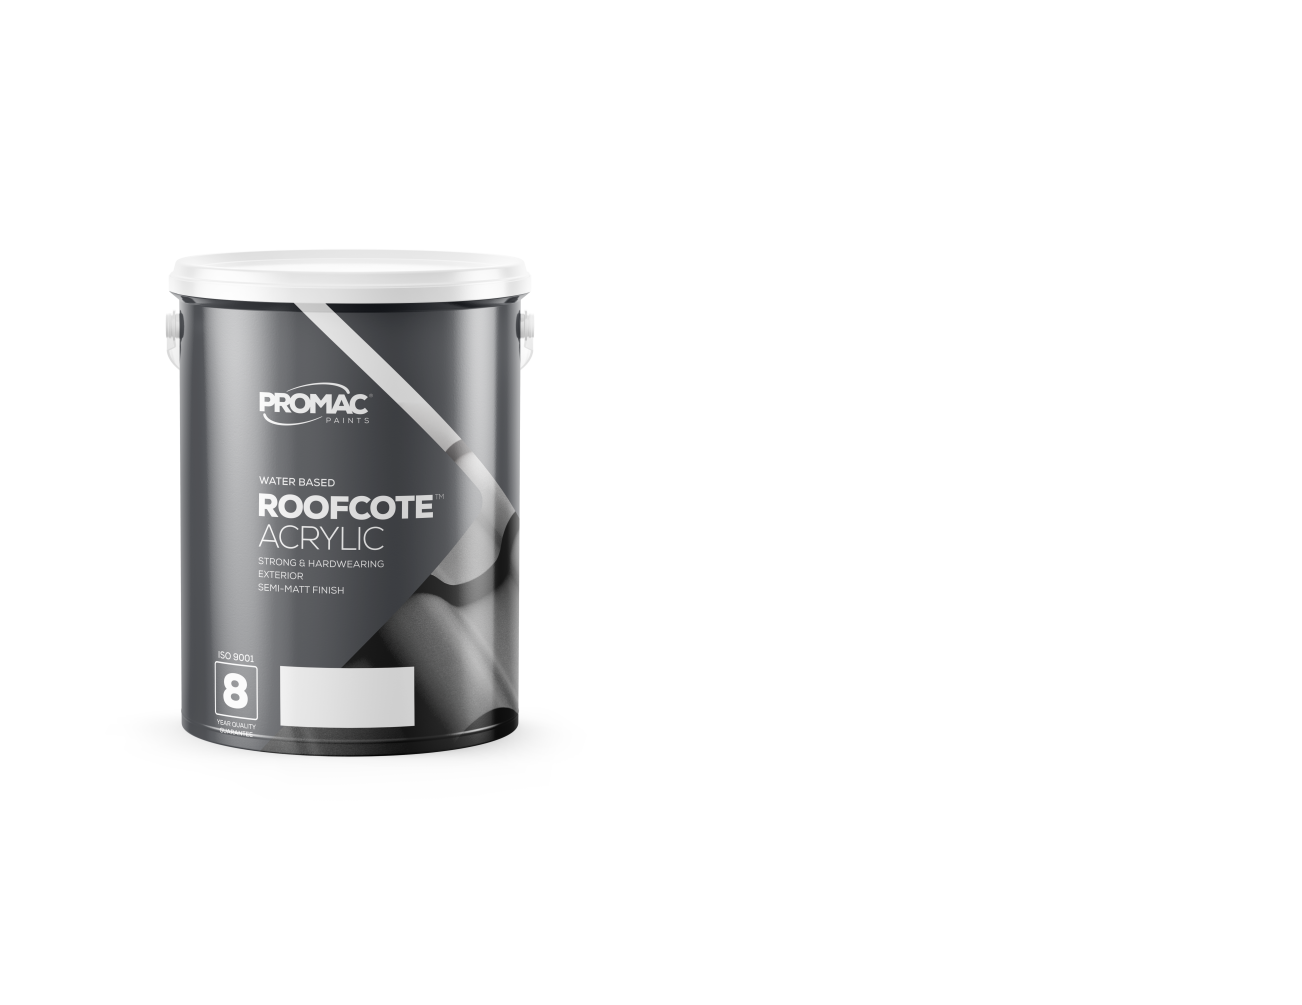 ROOFCOTEACRYLIC - WATER BASEDPromac RoofCote™ Acrylic is a high quality semi-mat finish coating for tile, cement & galvanised roofs. Has outstanding weathering properties and is available in a wide range of colours.